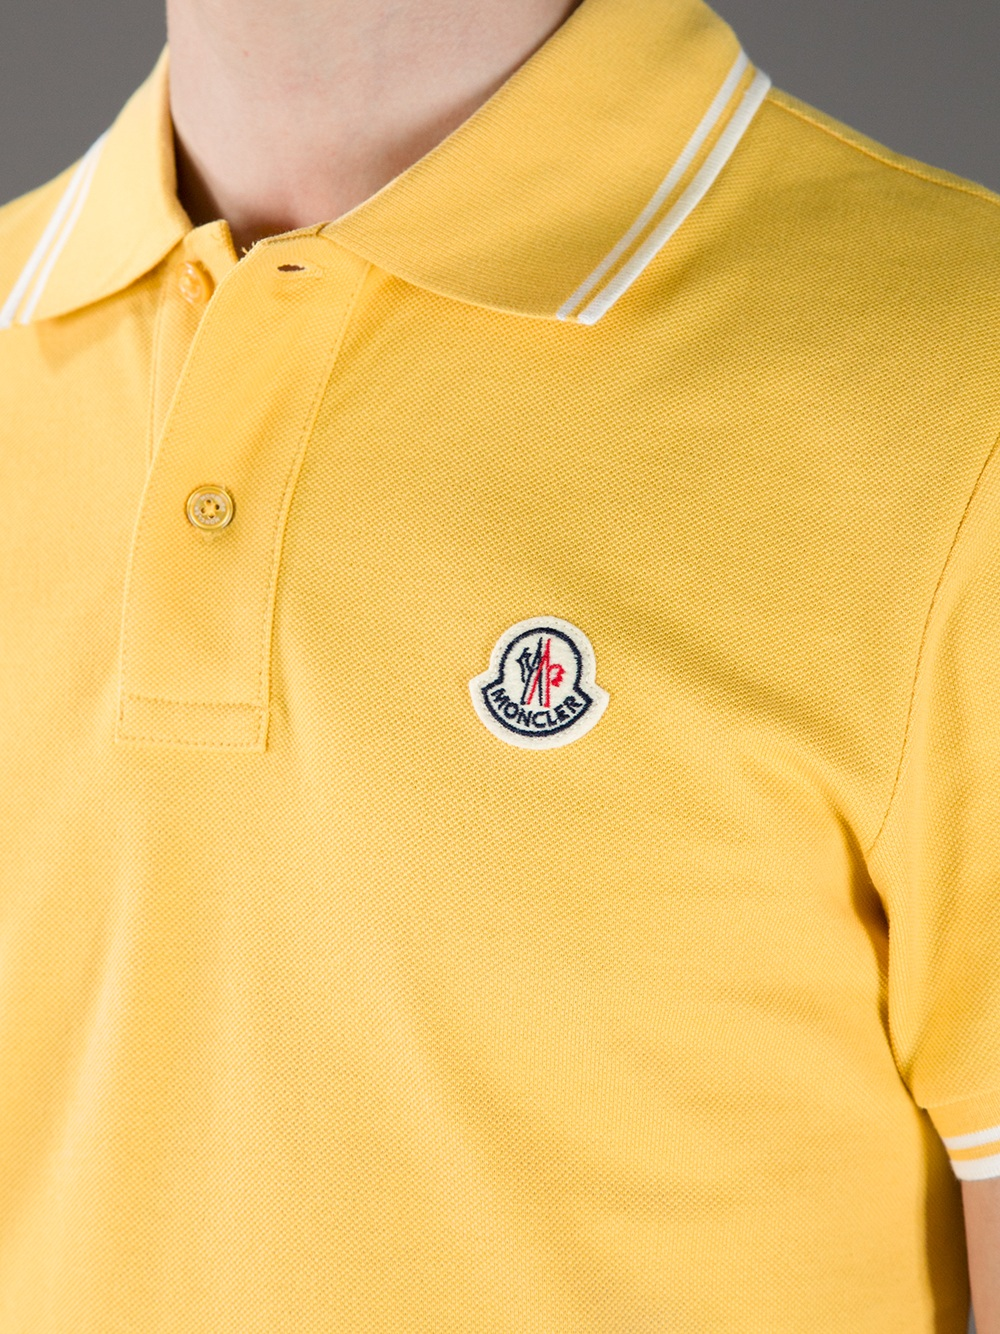 7b2e83c5a Moncler Classic Polo Shirt in Yellow for Men - Lyst